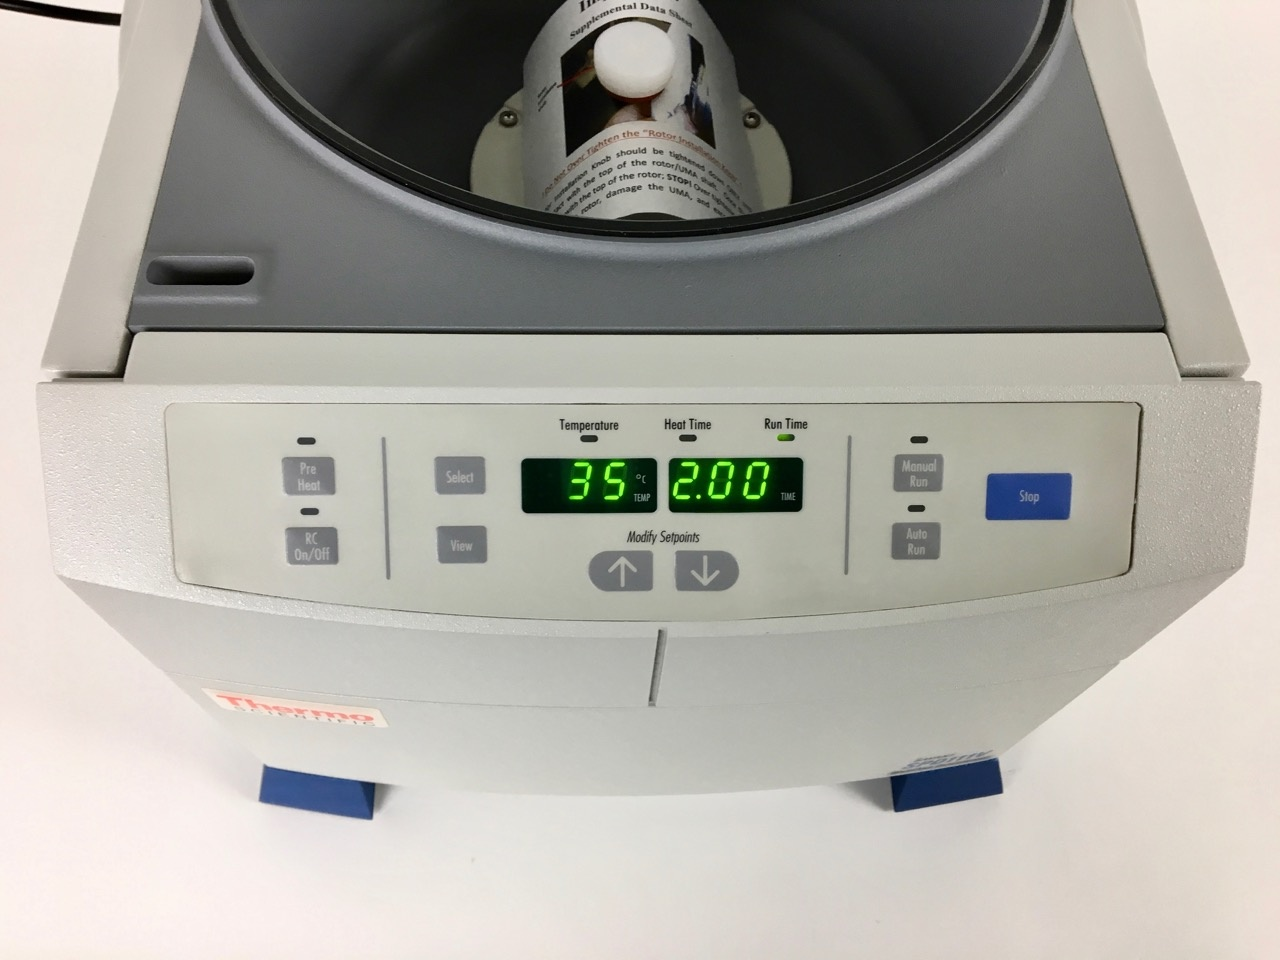 Thermo Scientific Thermo SPD111V SpeedVac concentrator with glass lid